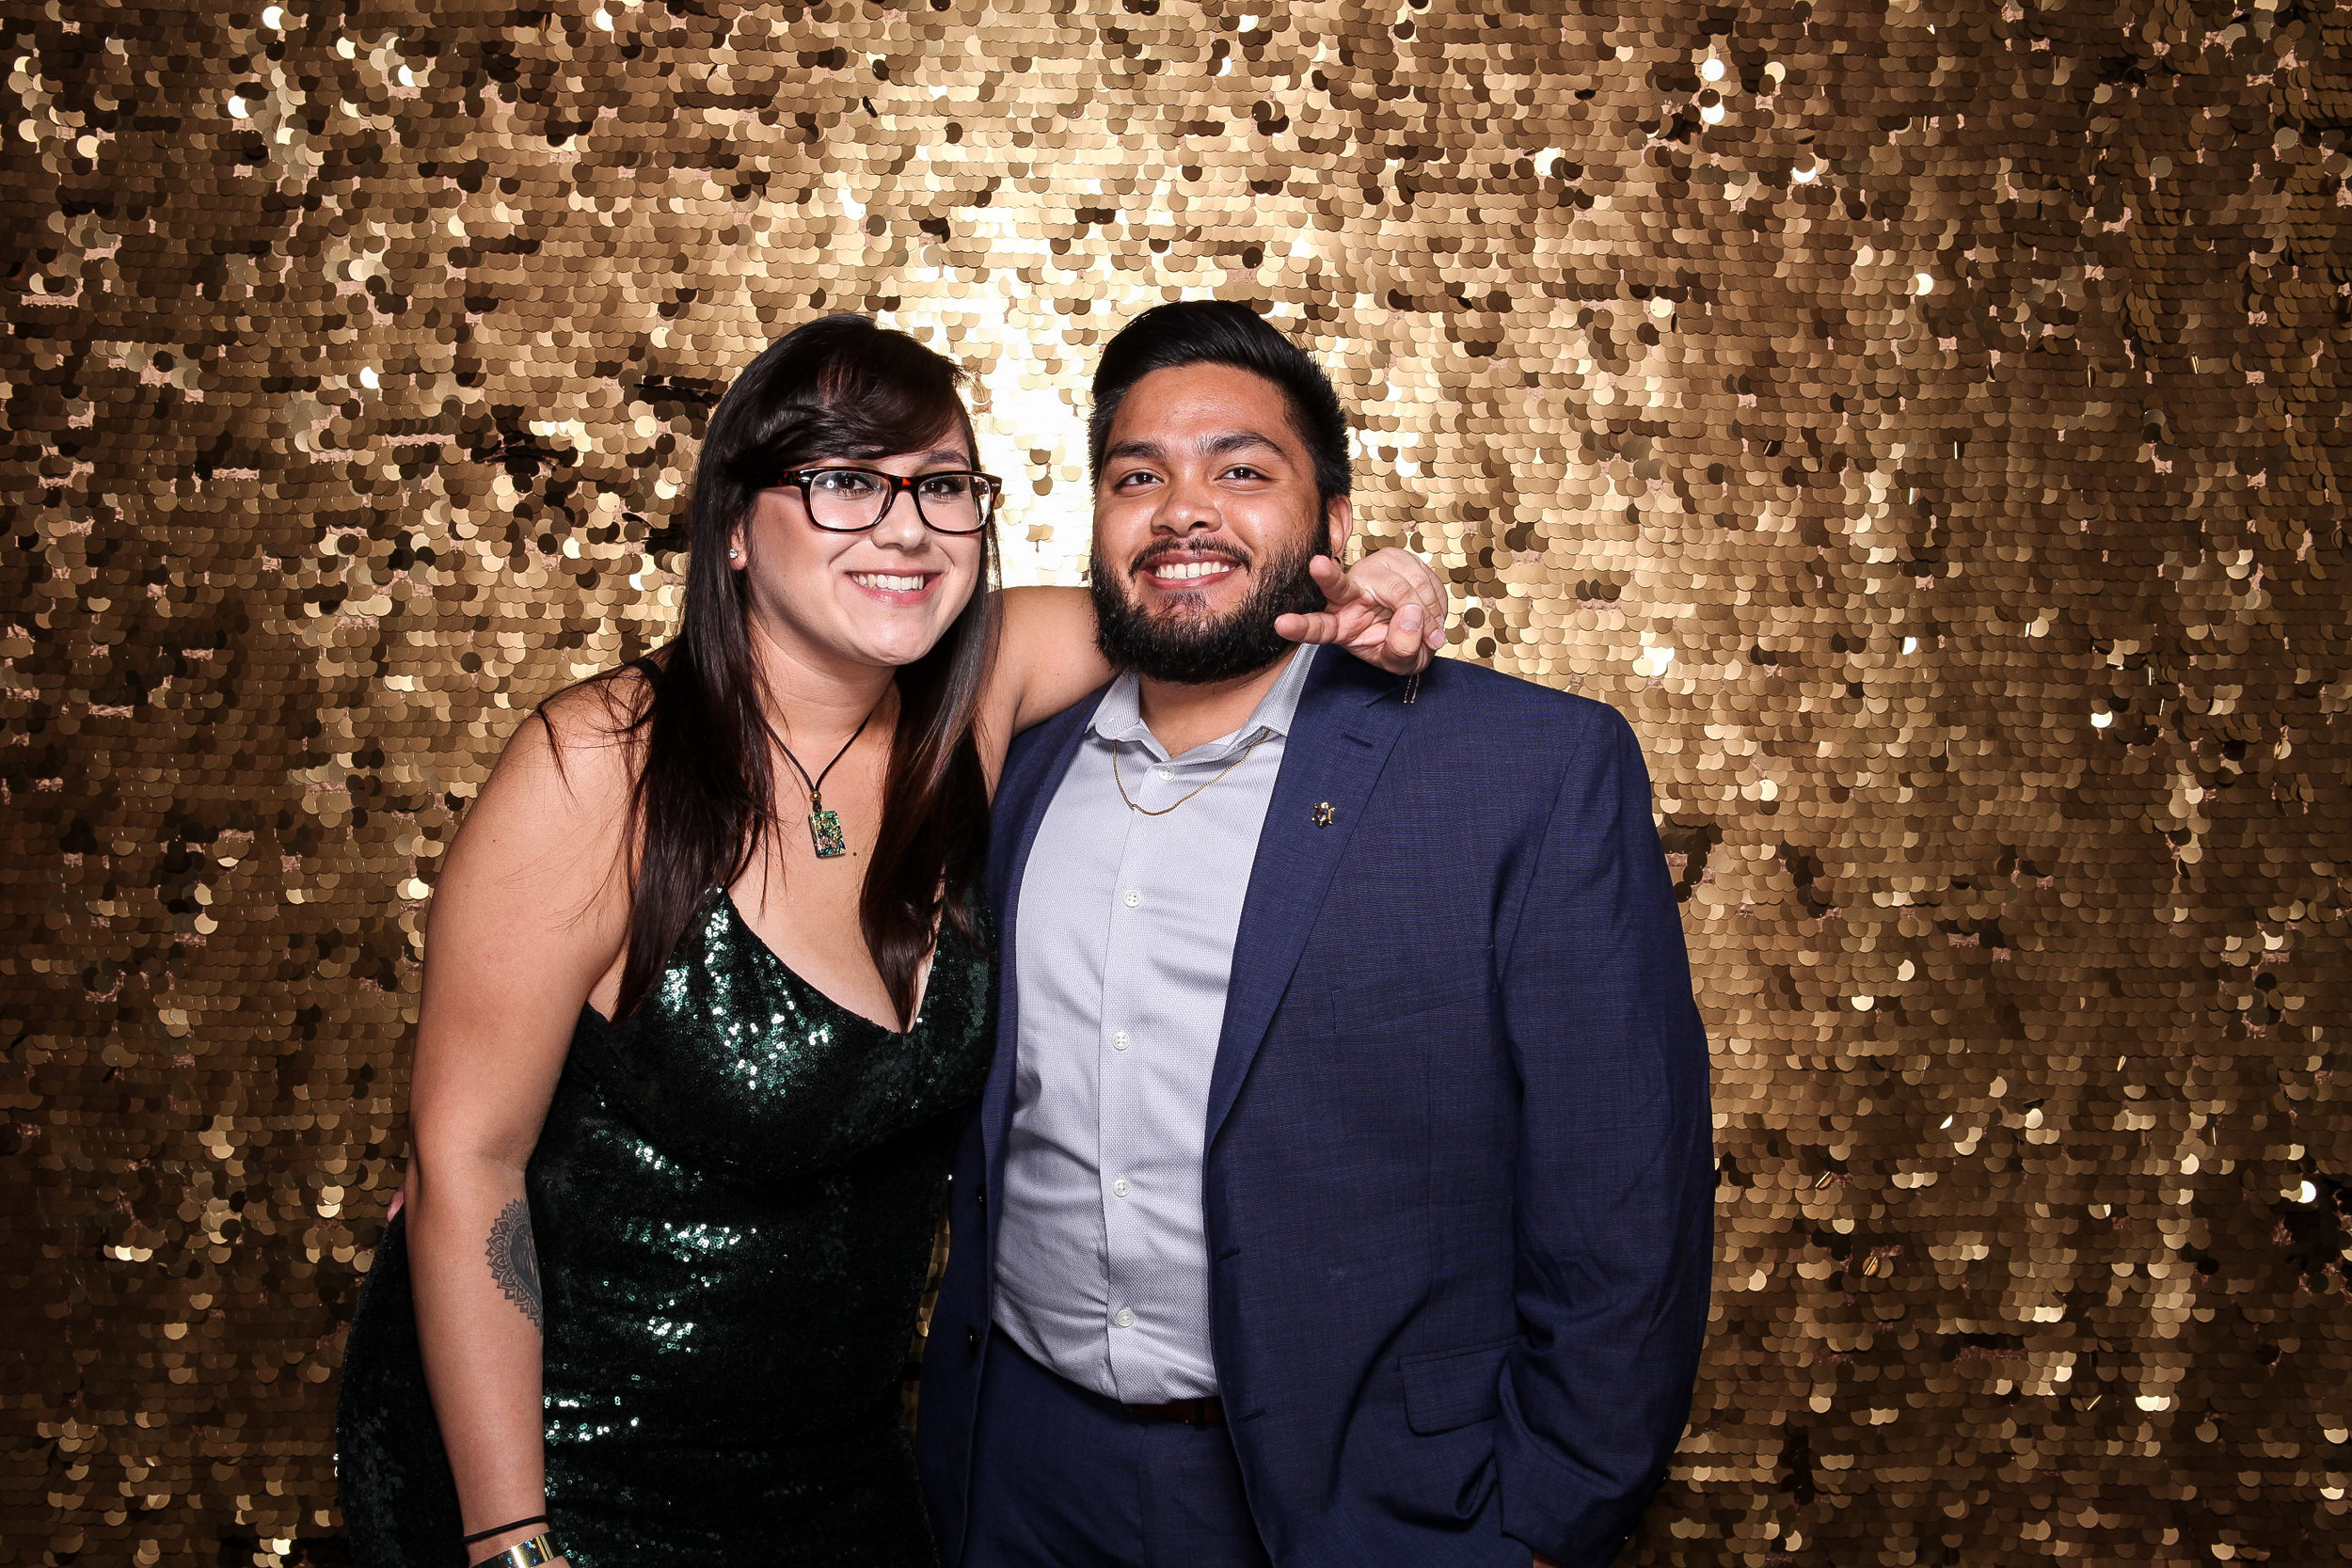 20190503_Adelphi_Senior_Formal-189.jpg